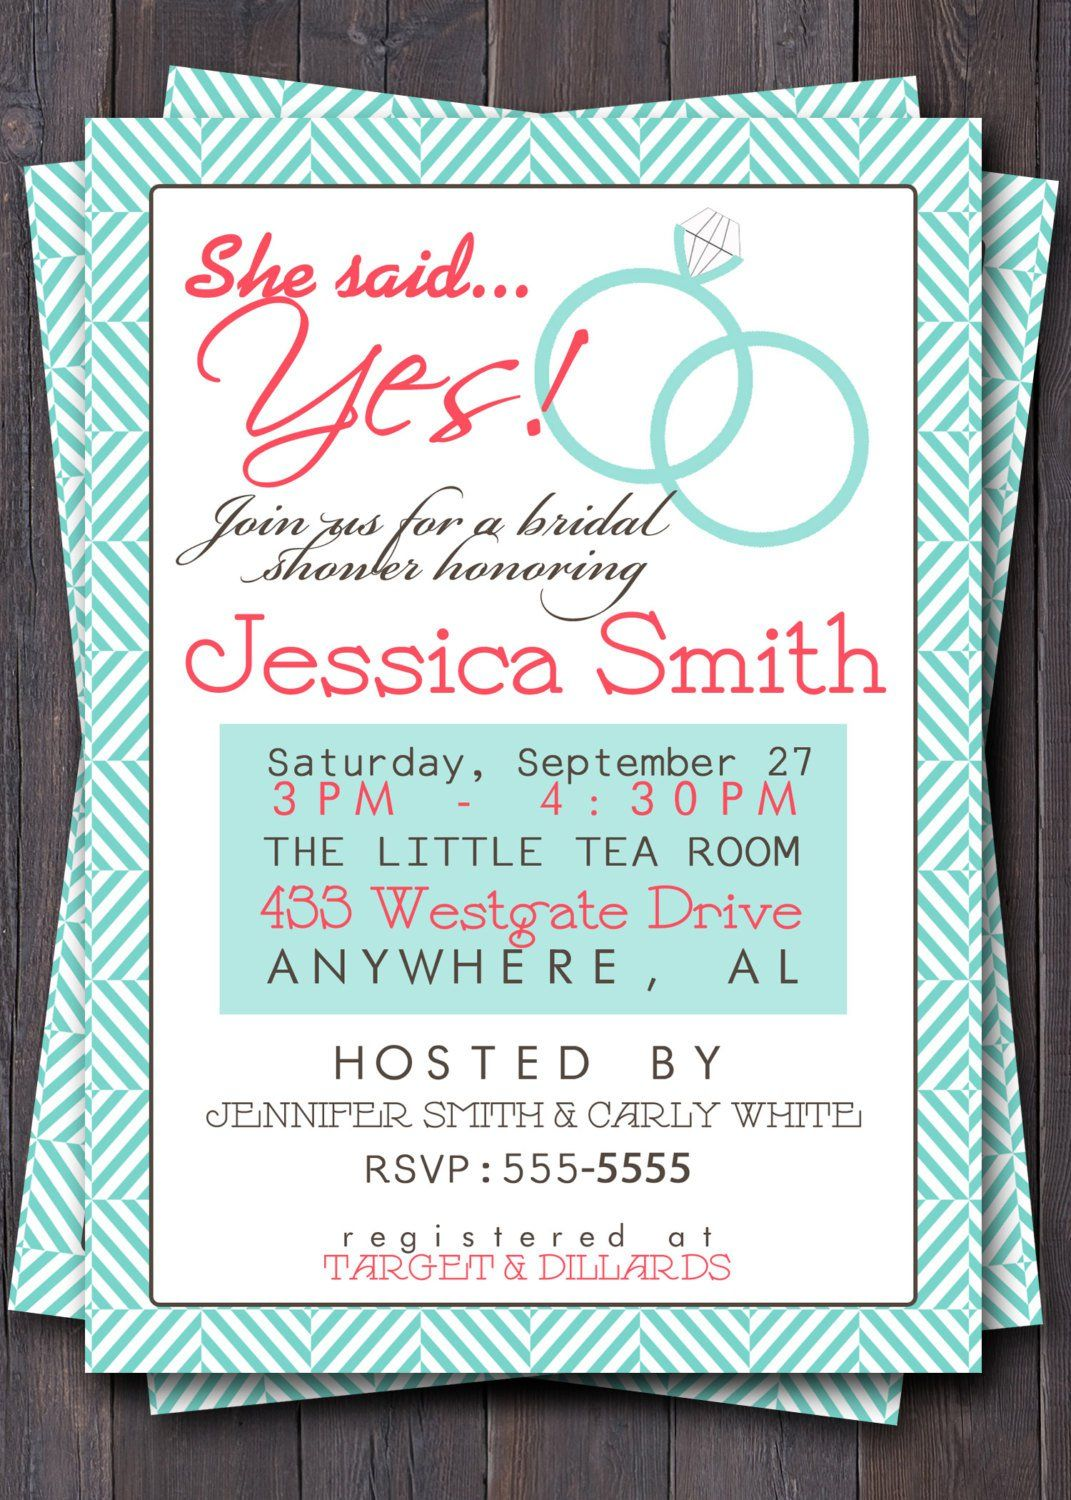 Bridal shower invitation wording for gift cards bridal shower bridal shower invitation wording for gift cards filmwisefo